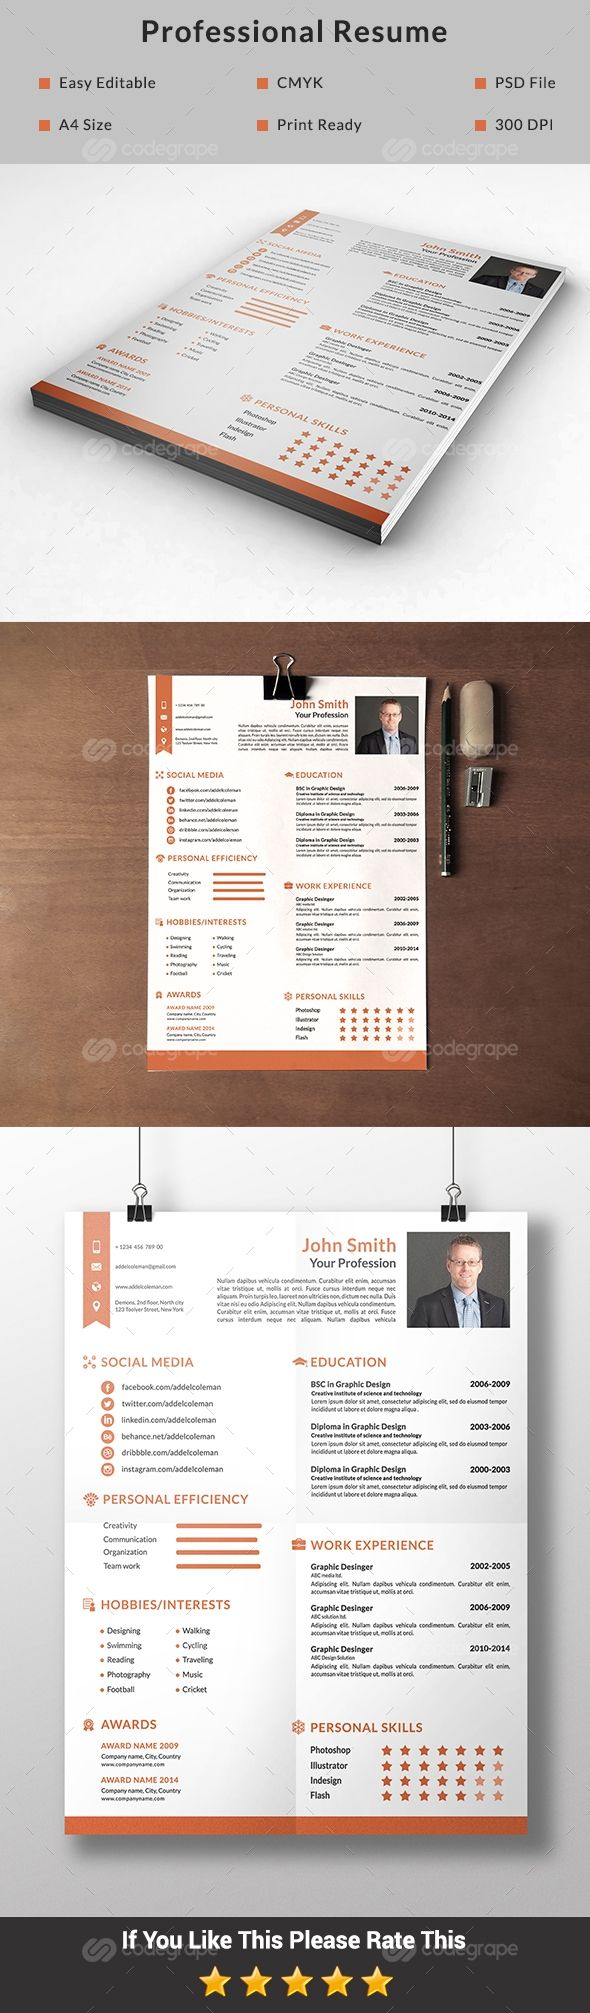 medical billing resumes%0A Professional Resume Design